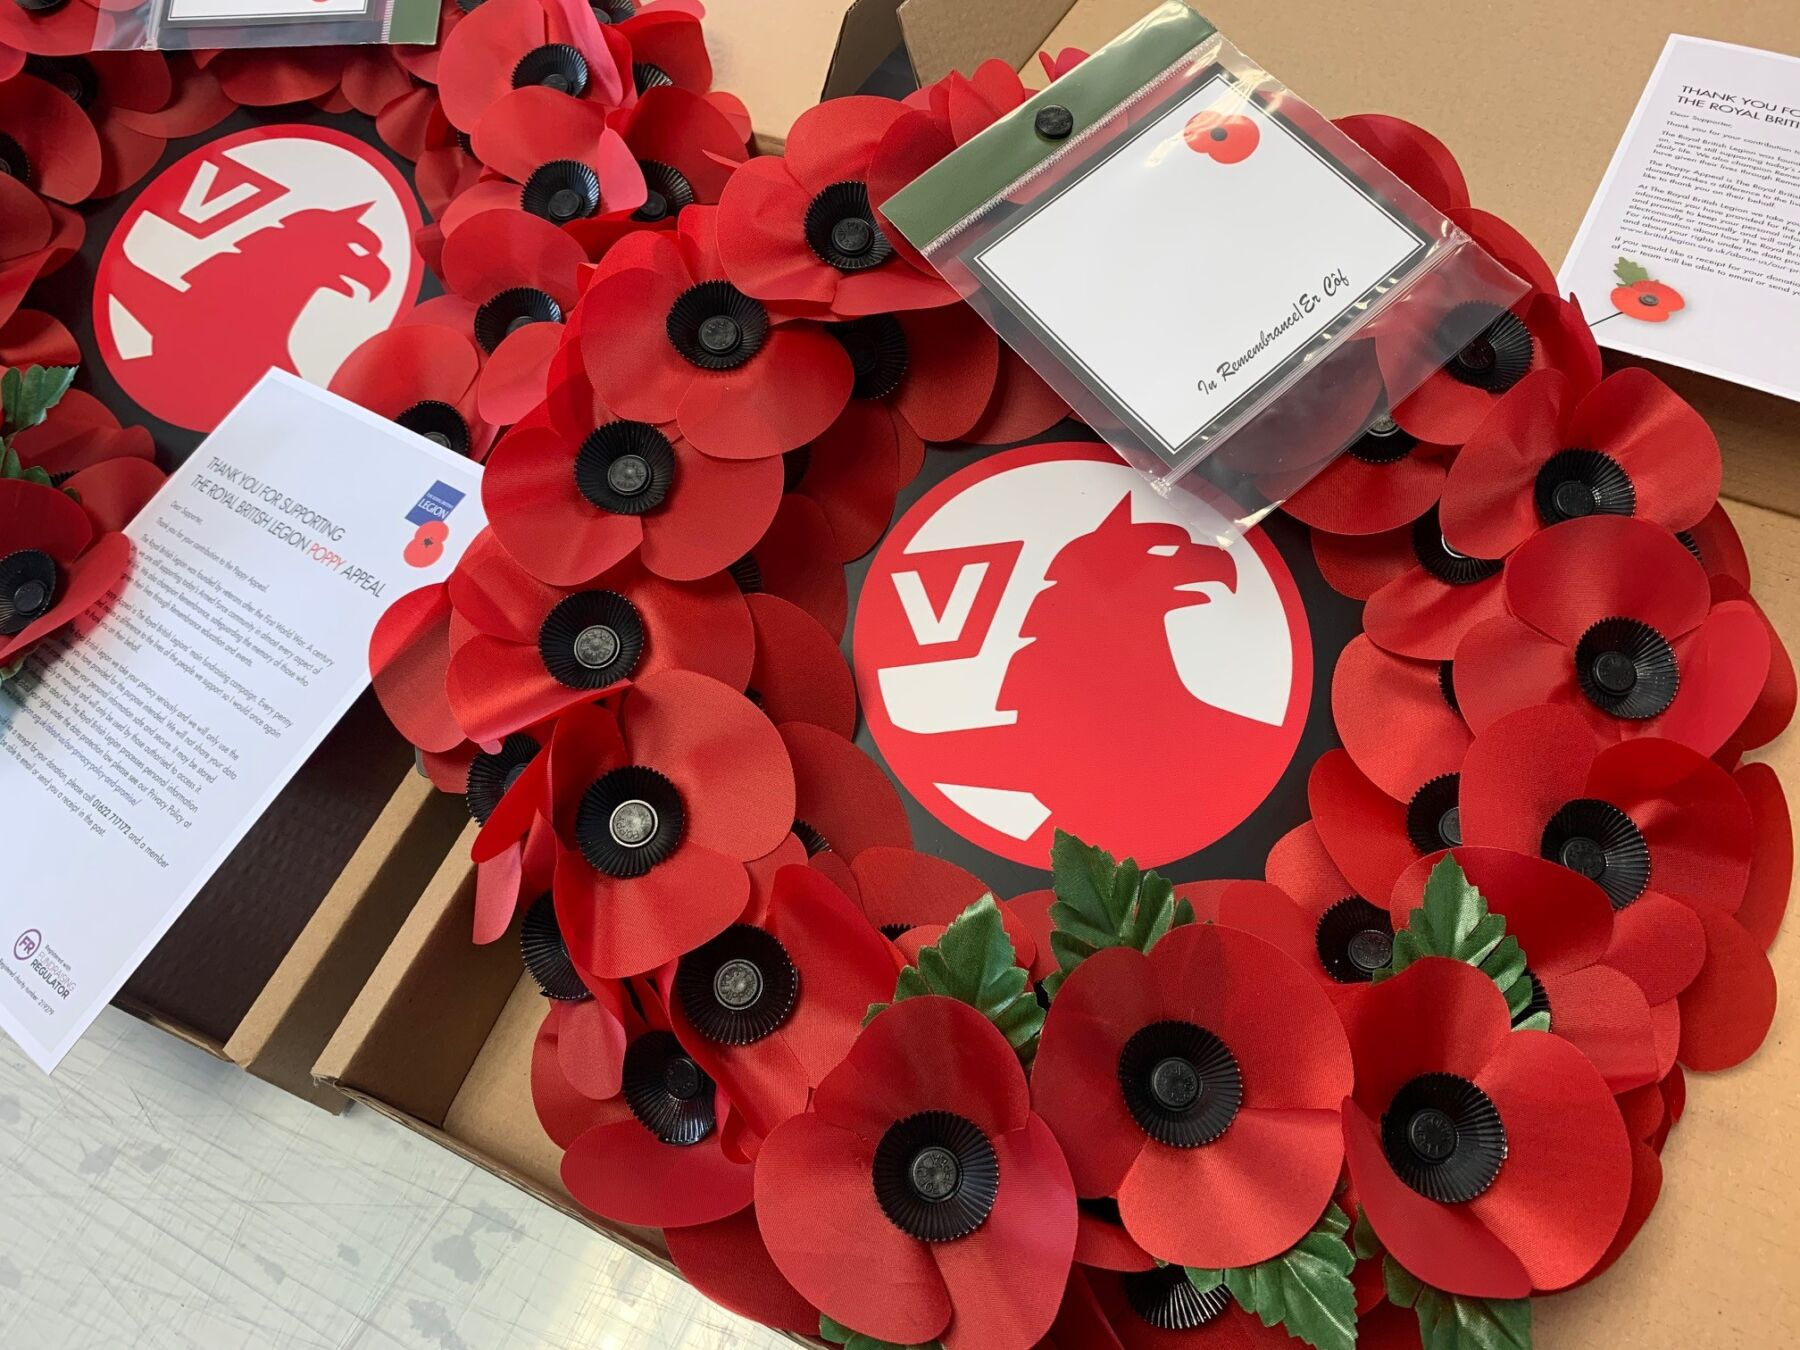 Vauxhall branded remembrance wreaths